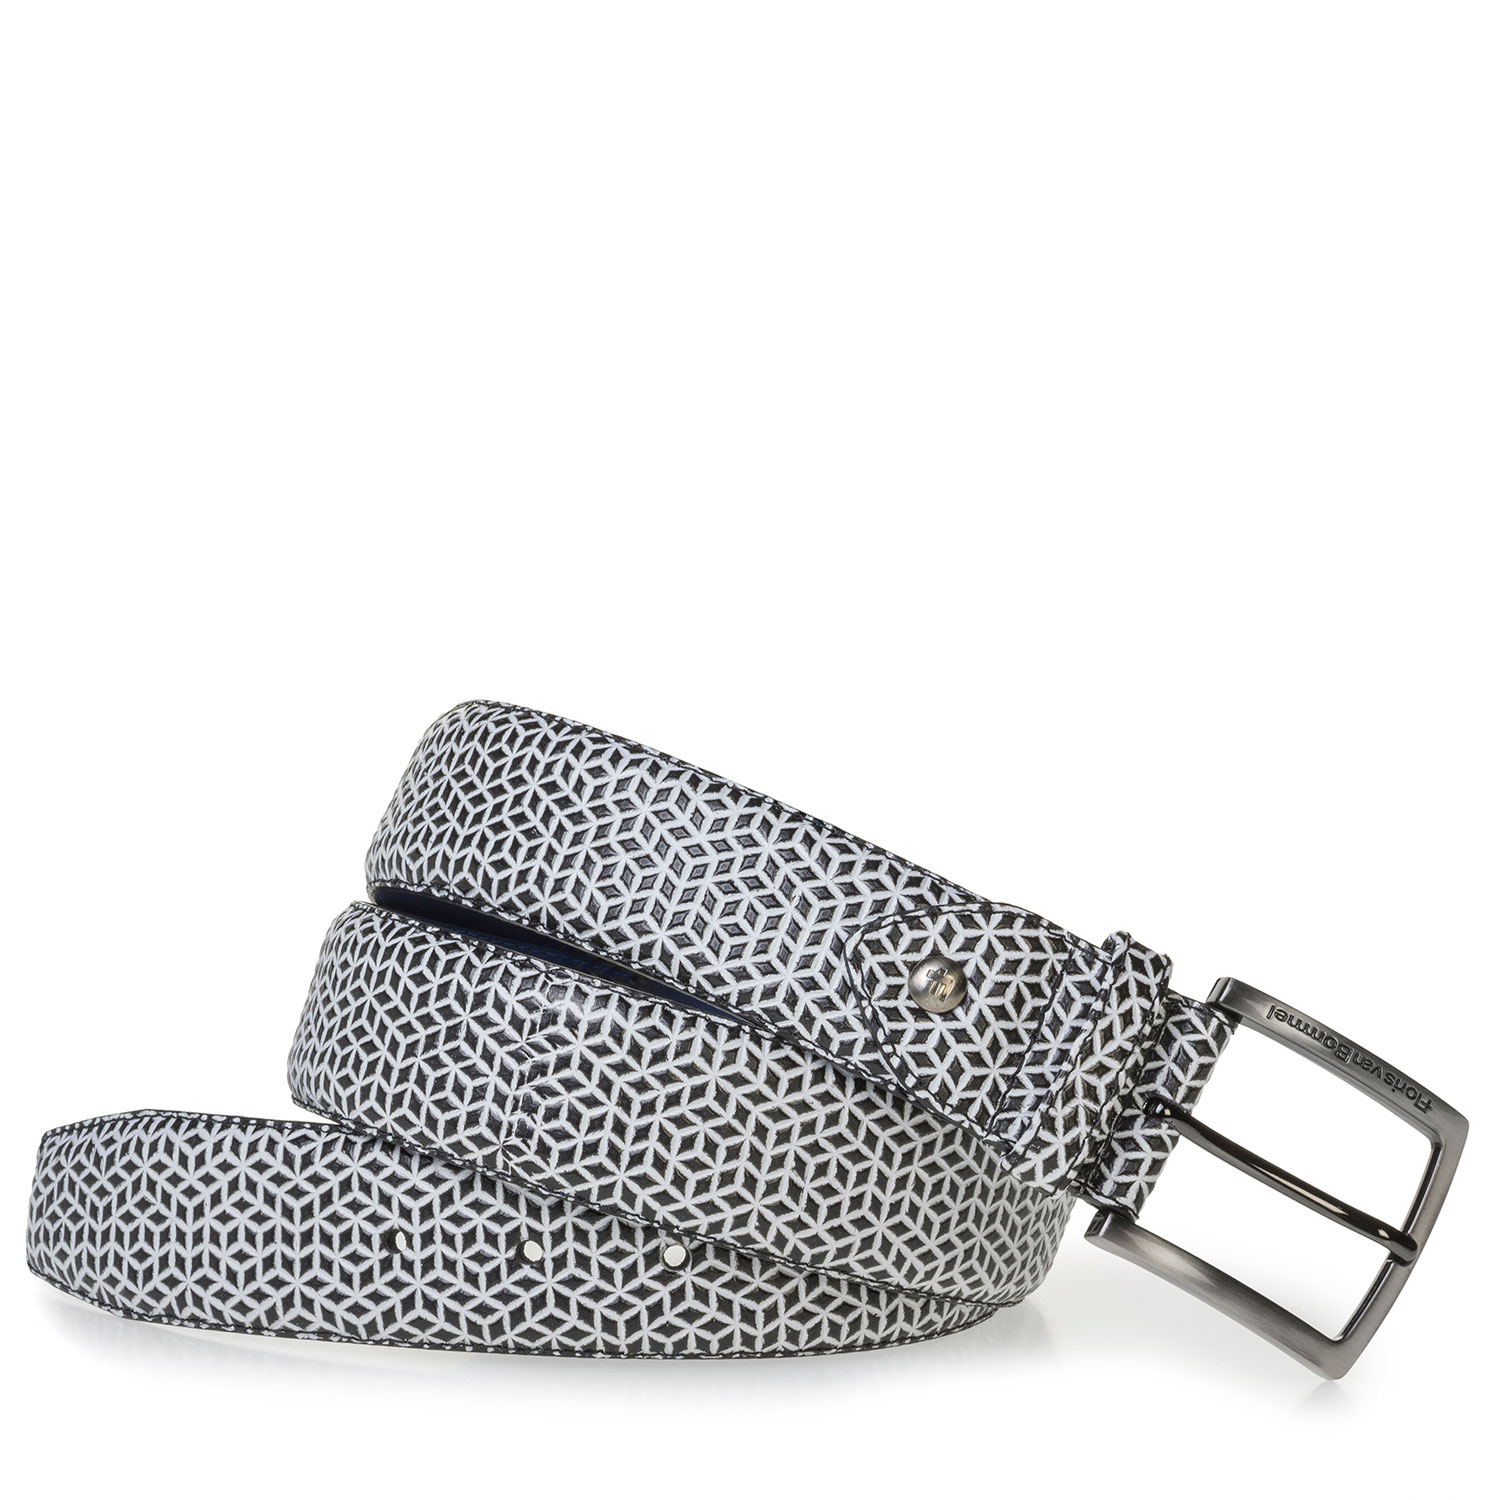 75202/54 - White leather belt with black print